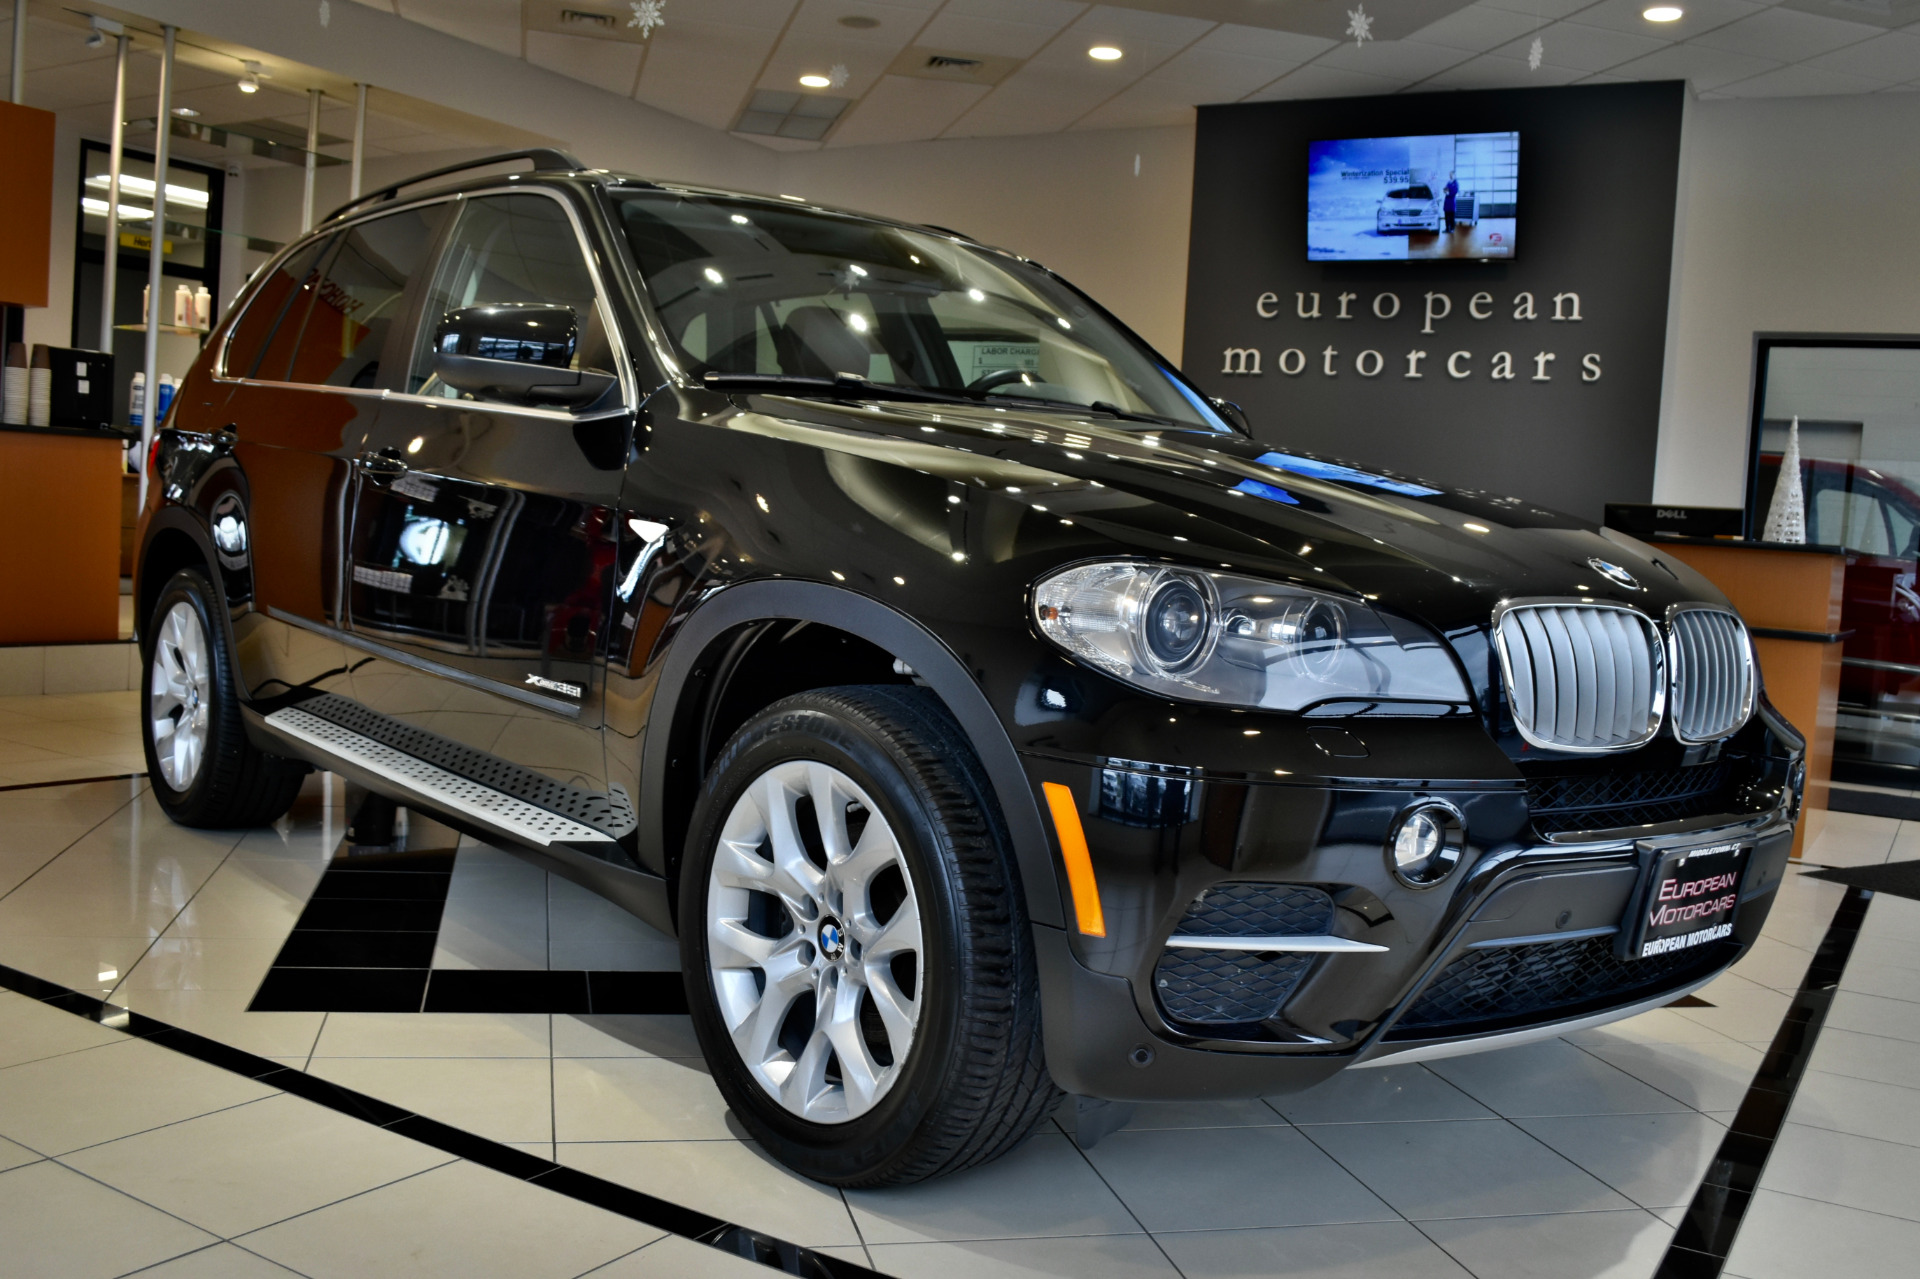 2013 Bmw X5 Xdrive35i Premium For Sale Near Middletown Ct Trailer Wiring